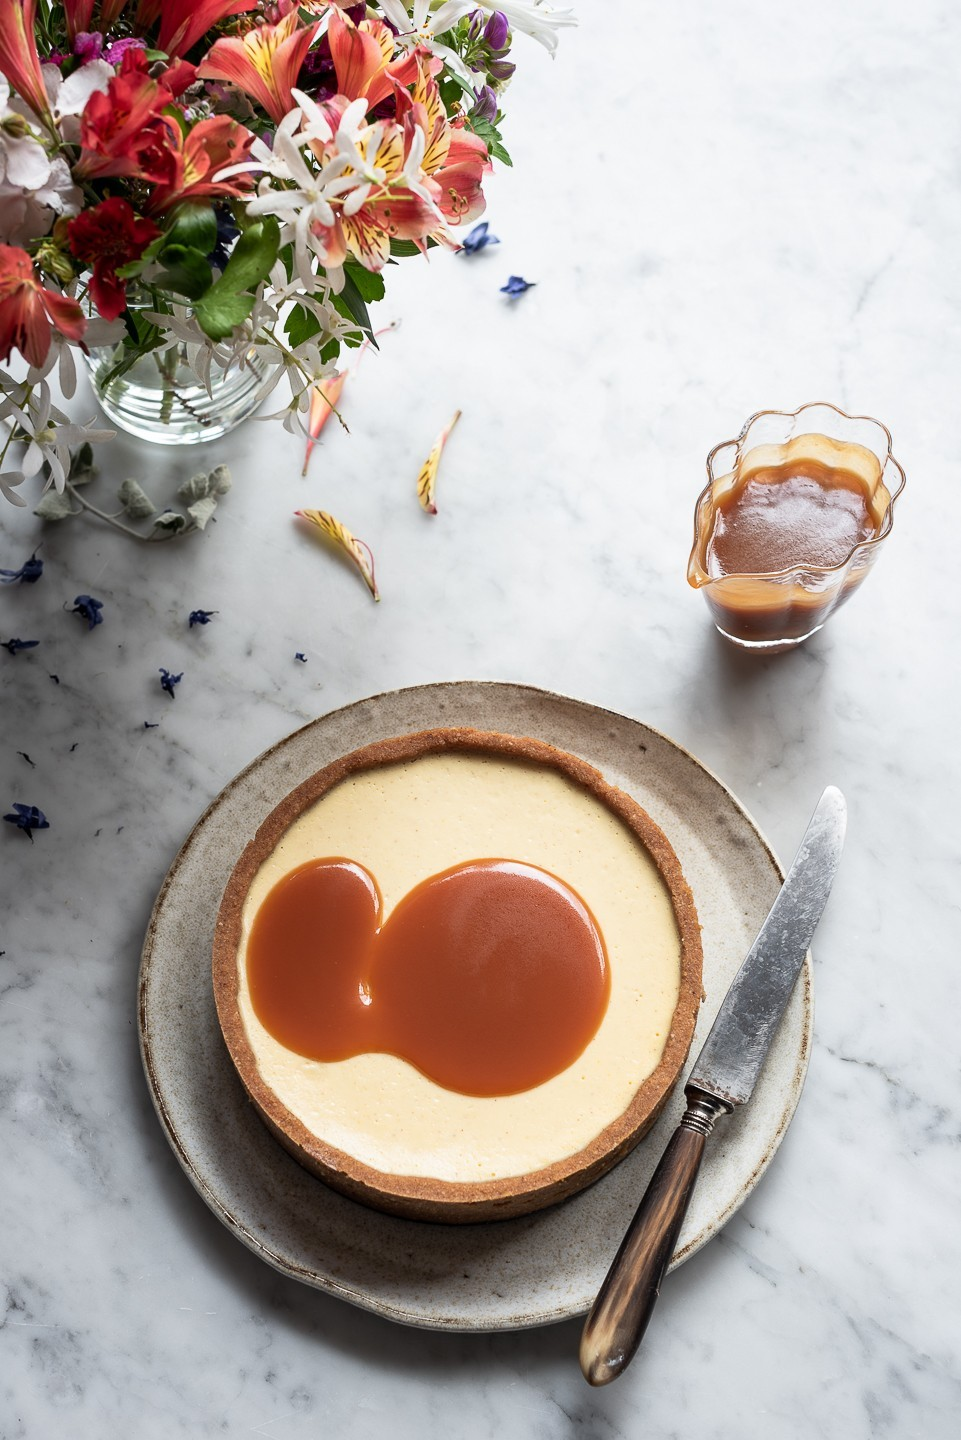 Milk tart cheesecake with Rum caramel